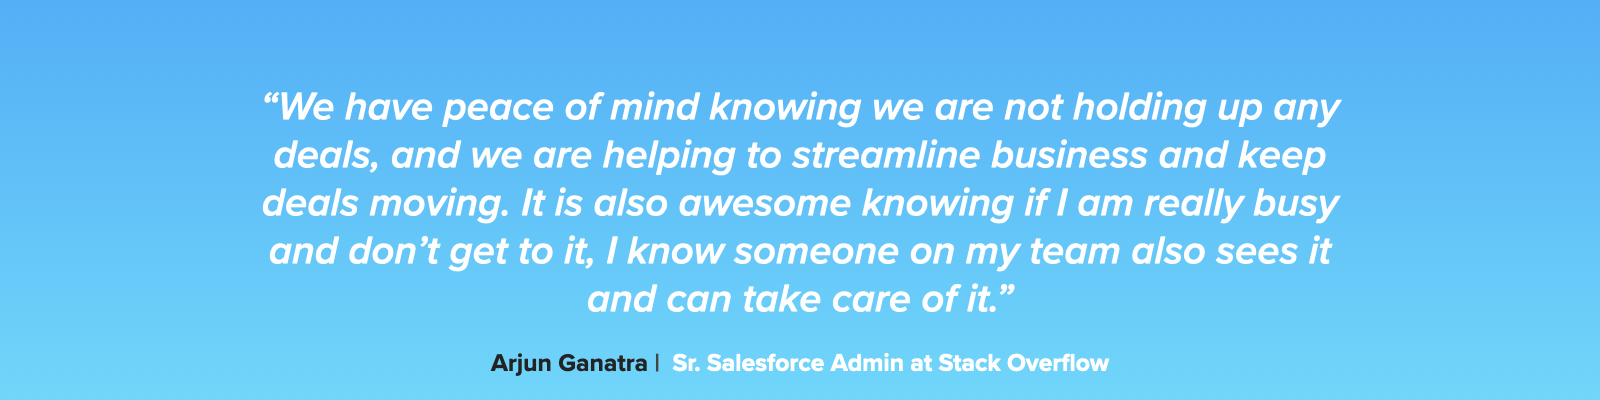 StackOverflow Quote #4.001